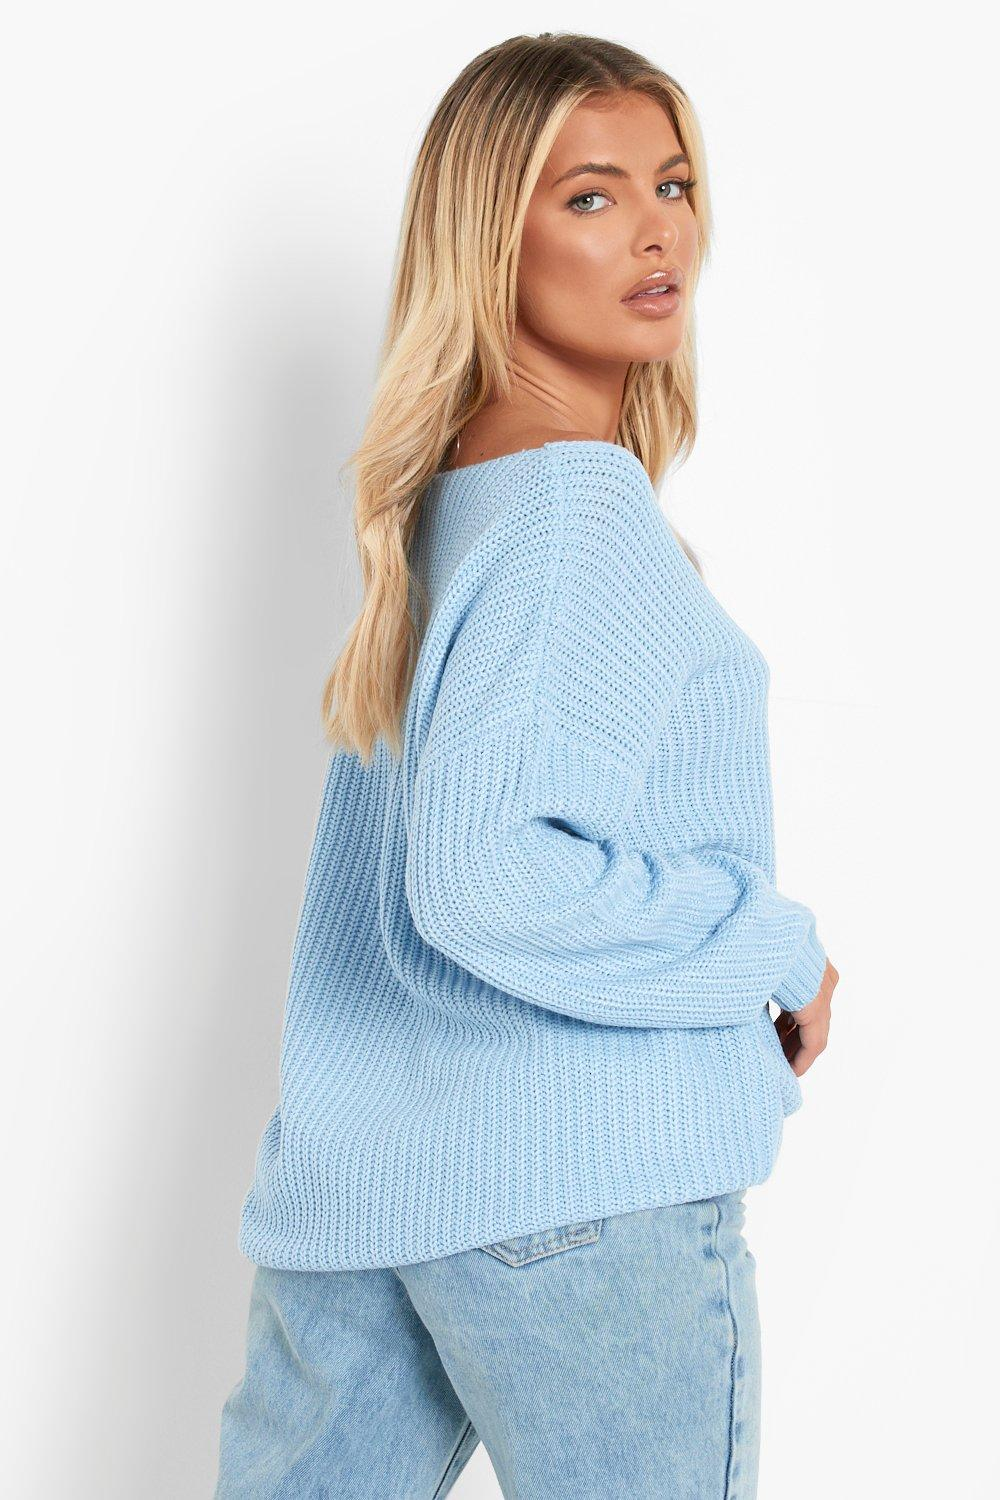 Womens Camel Colored Sweater Her Sweater